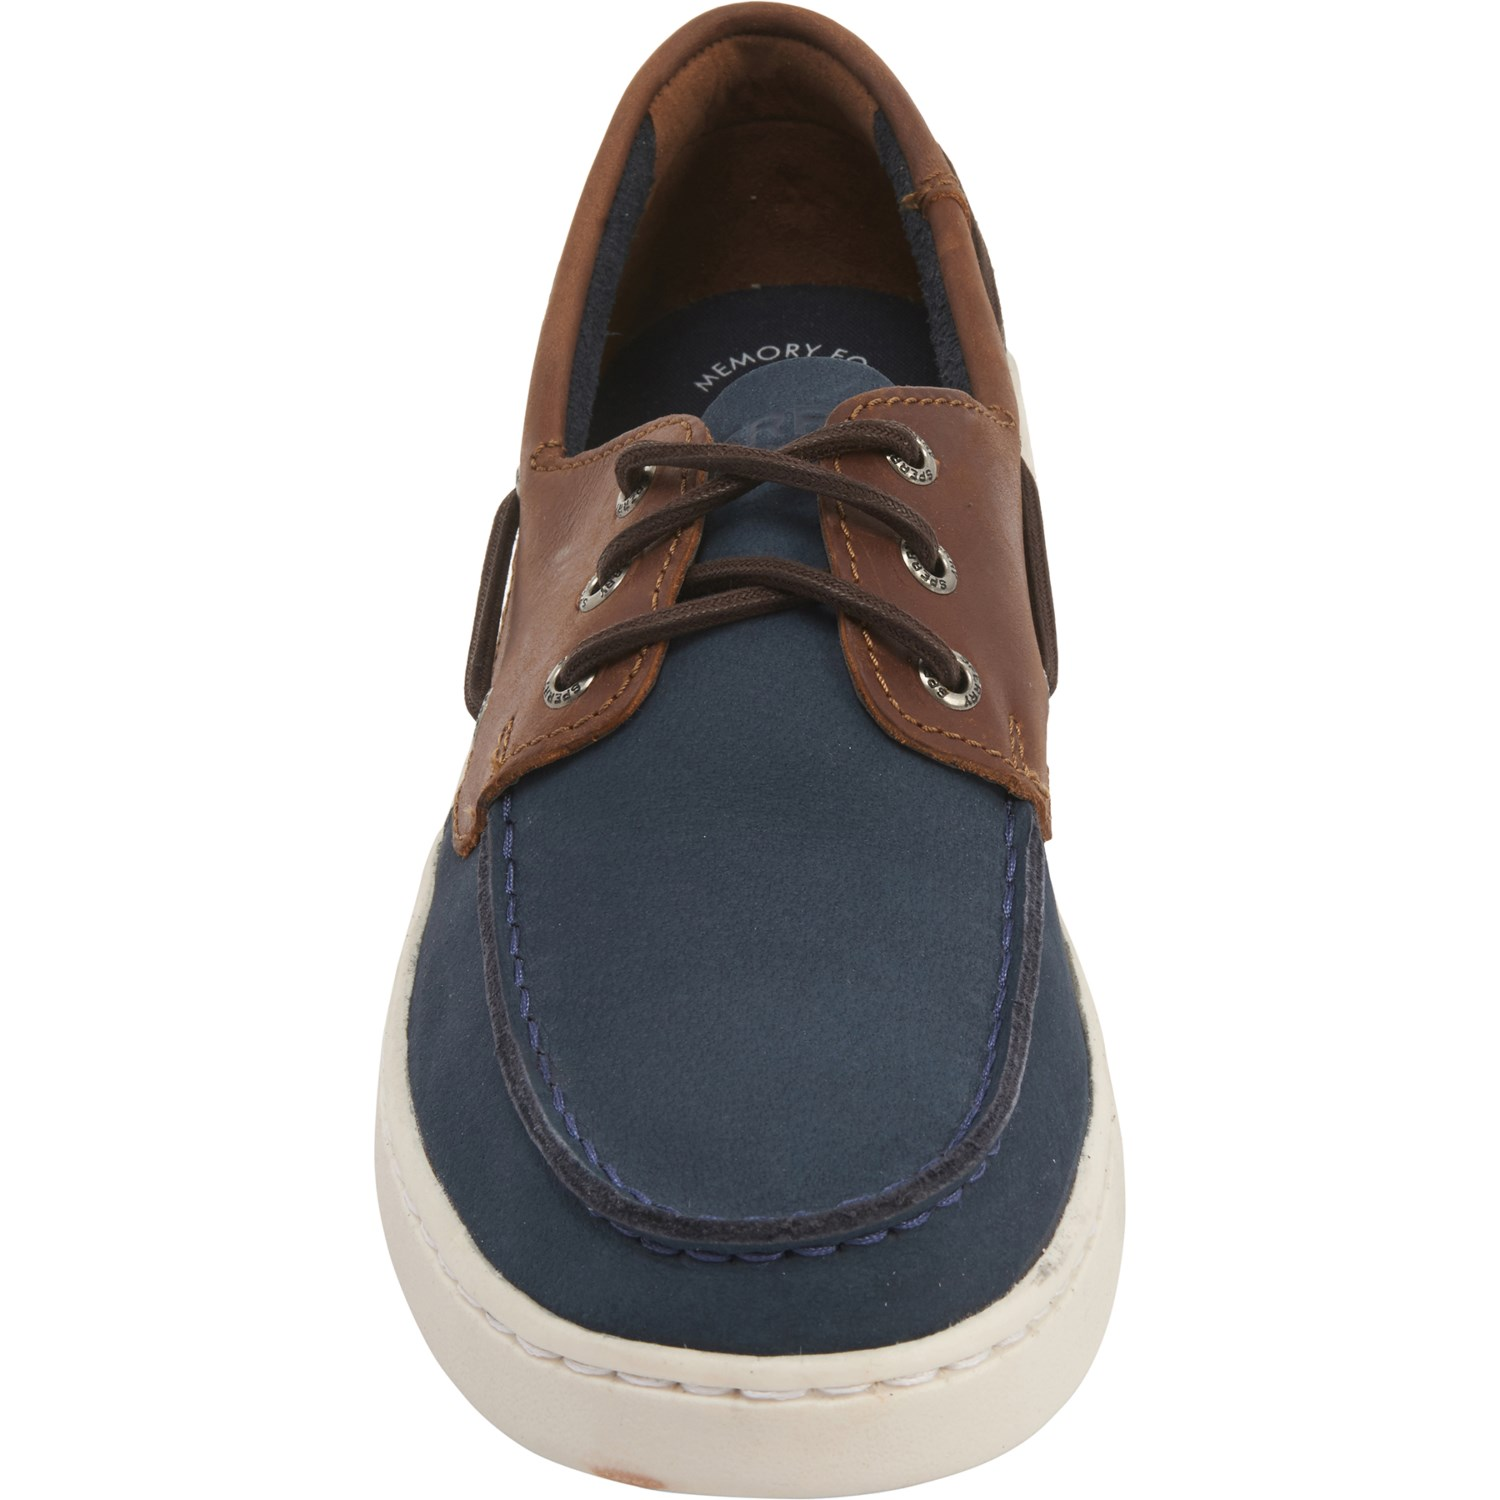 Sperry Navy Parkway 3 Eye Boat Shoes (For Men)